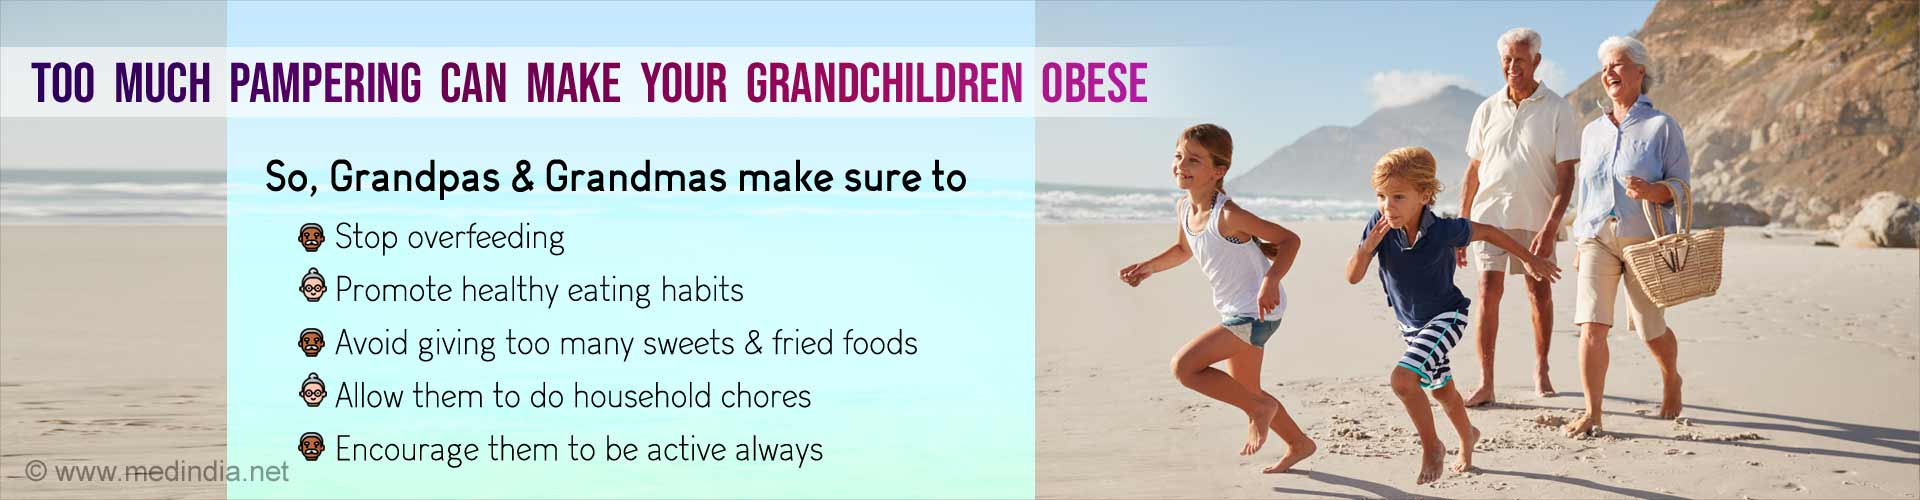 Too much pampering can make your grandchildren obese. So, Grandpas & Grandmas make sure to stop overfeeding, promote healthy eating habits, avoid giving too many sweets & fried foods, allow them to do household chores and encourage them to be active always.